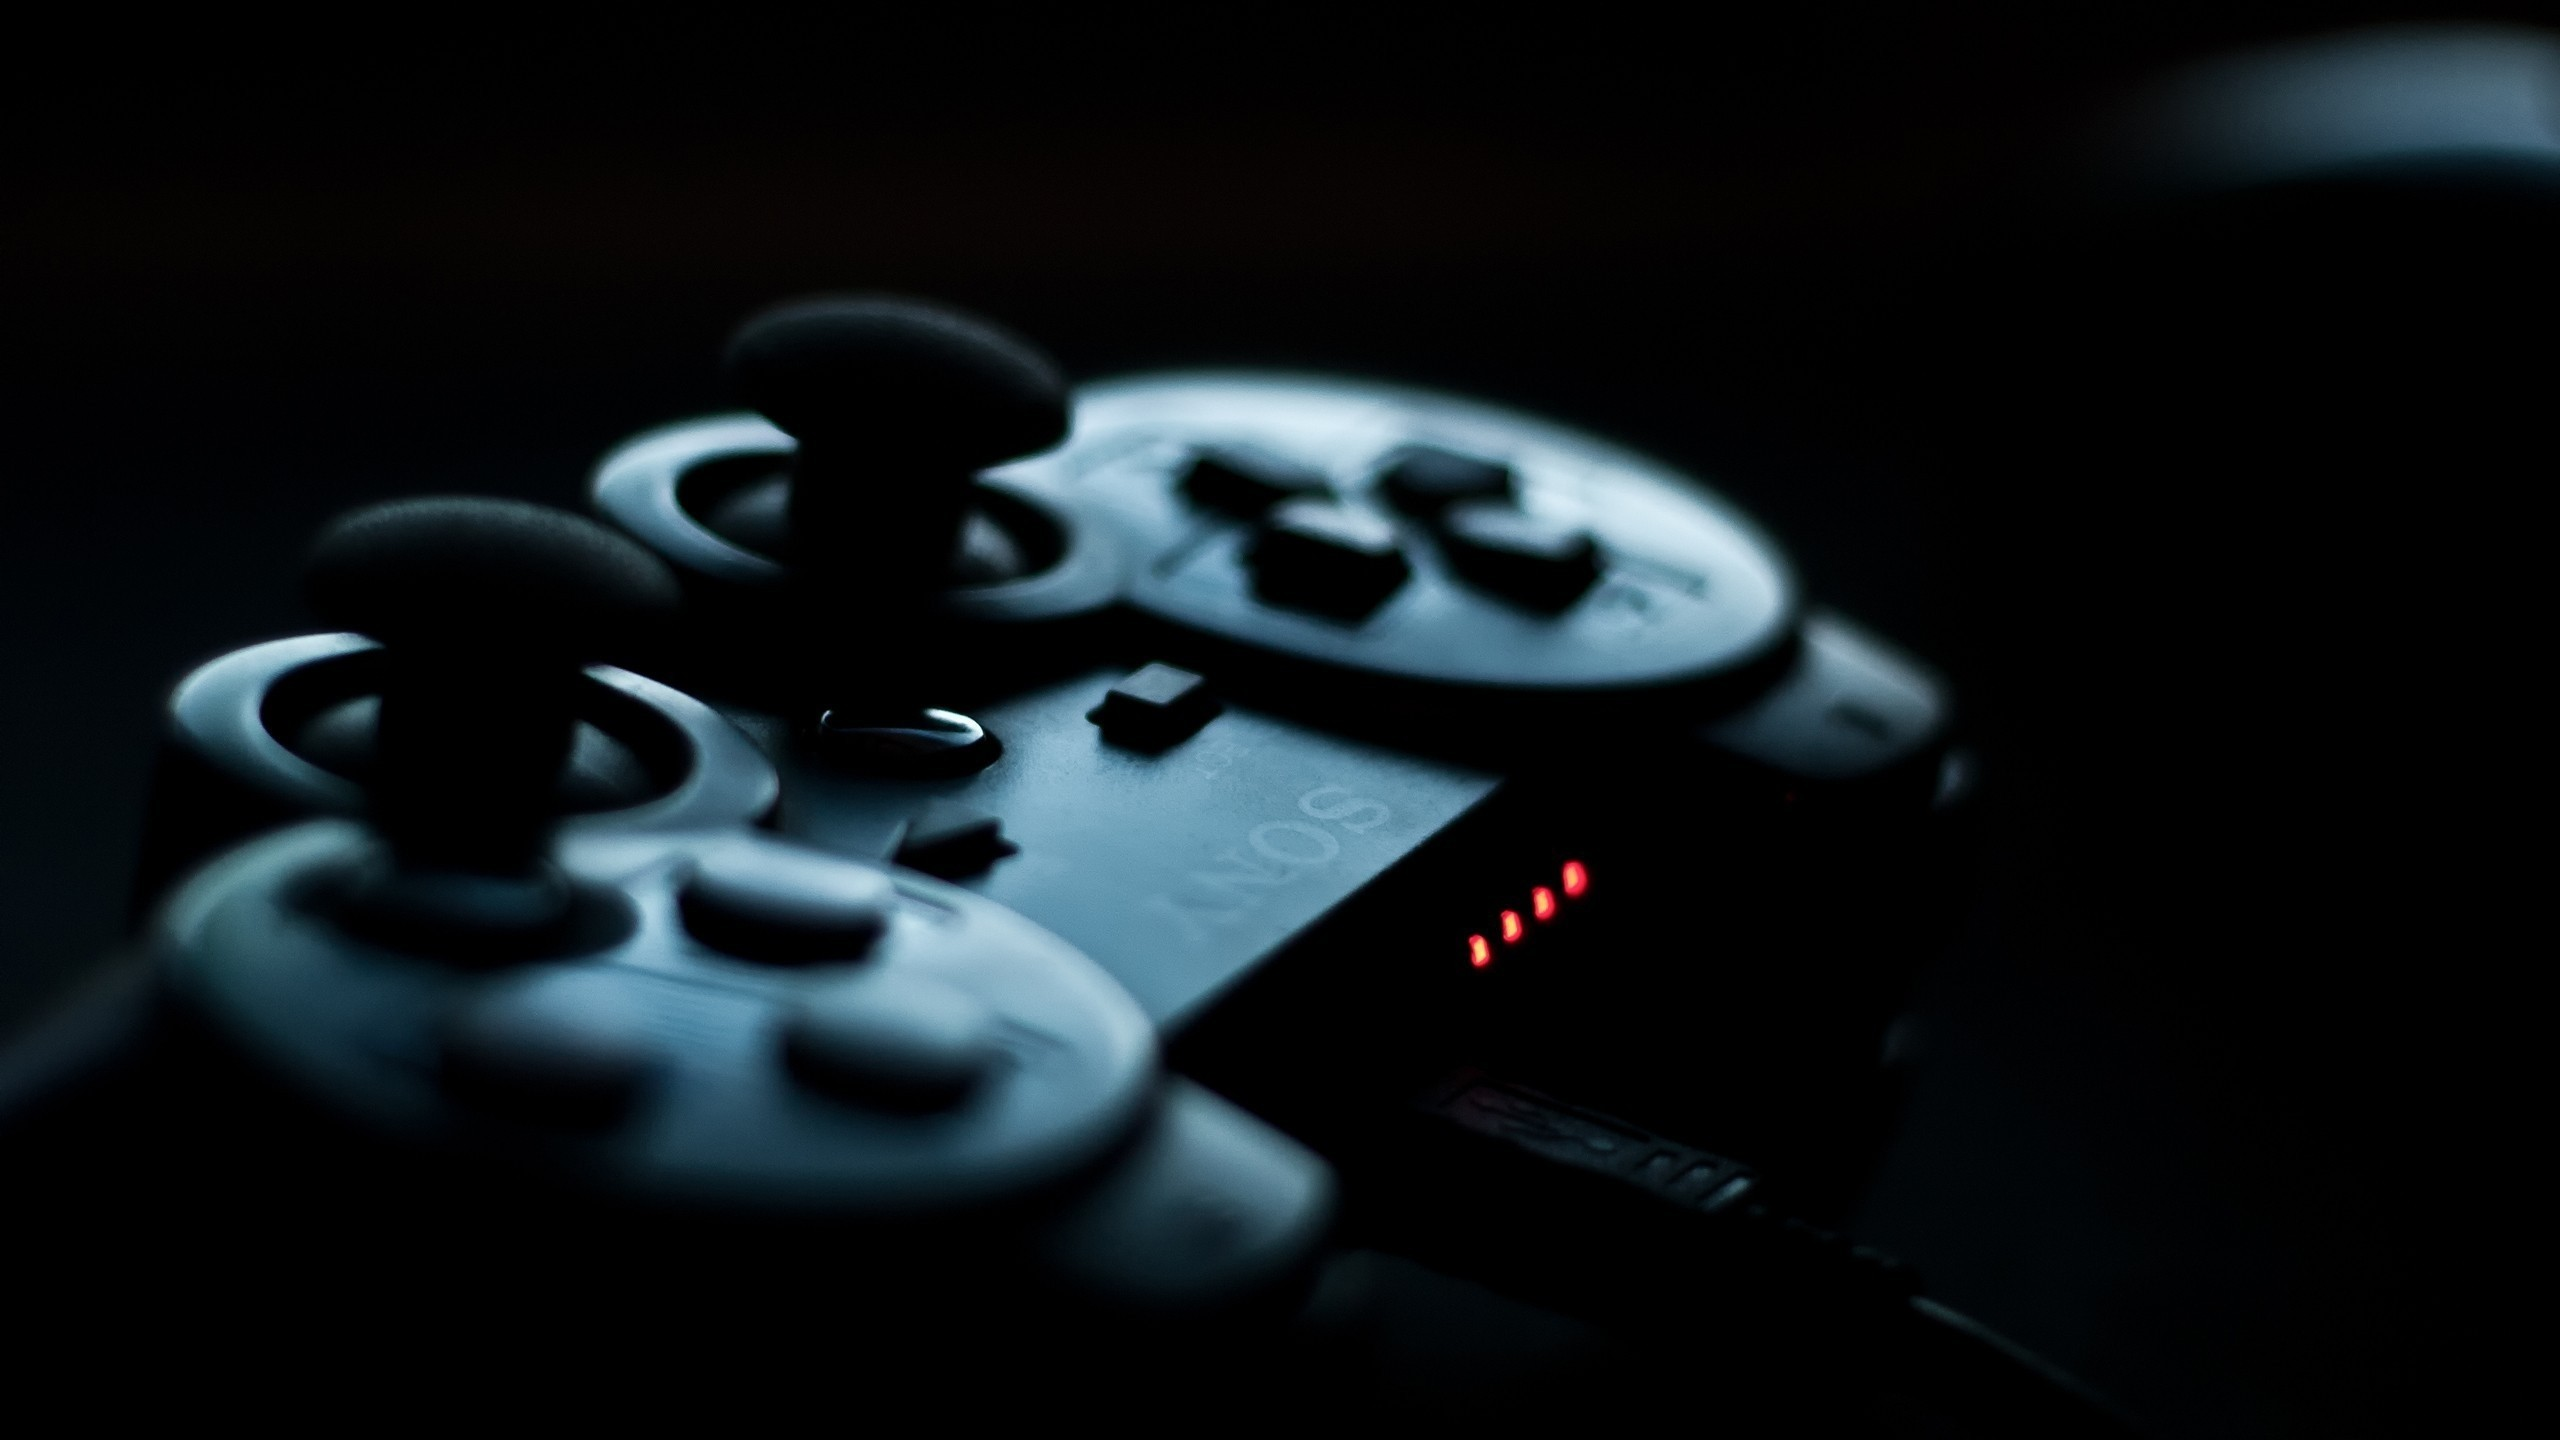 Gaming Wallpapers 2560 X 1440 76 images 2560x1440